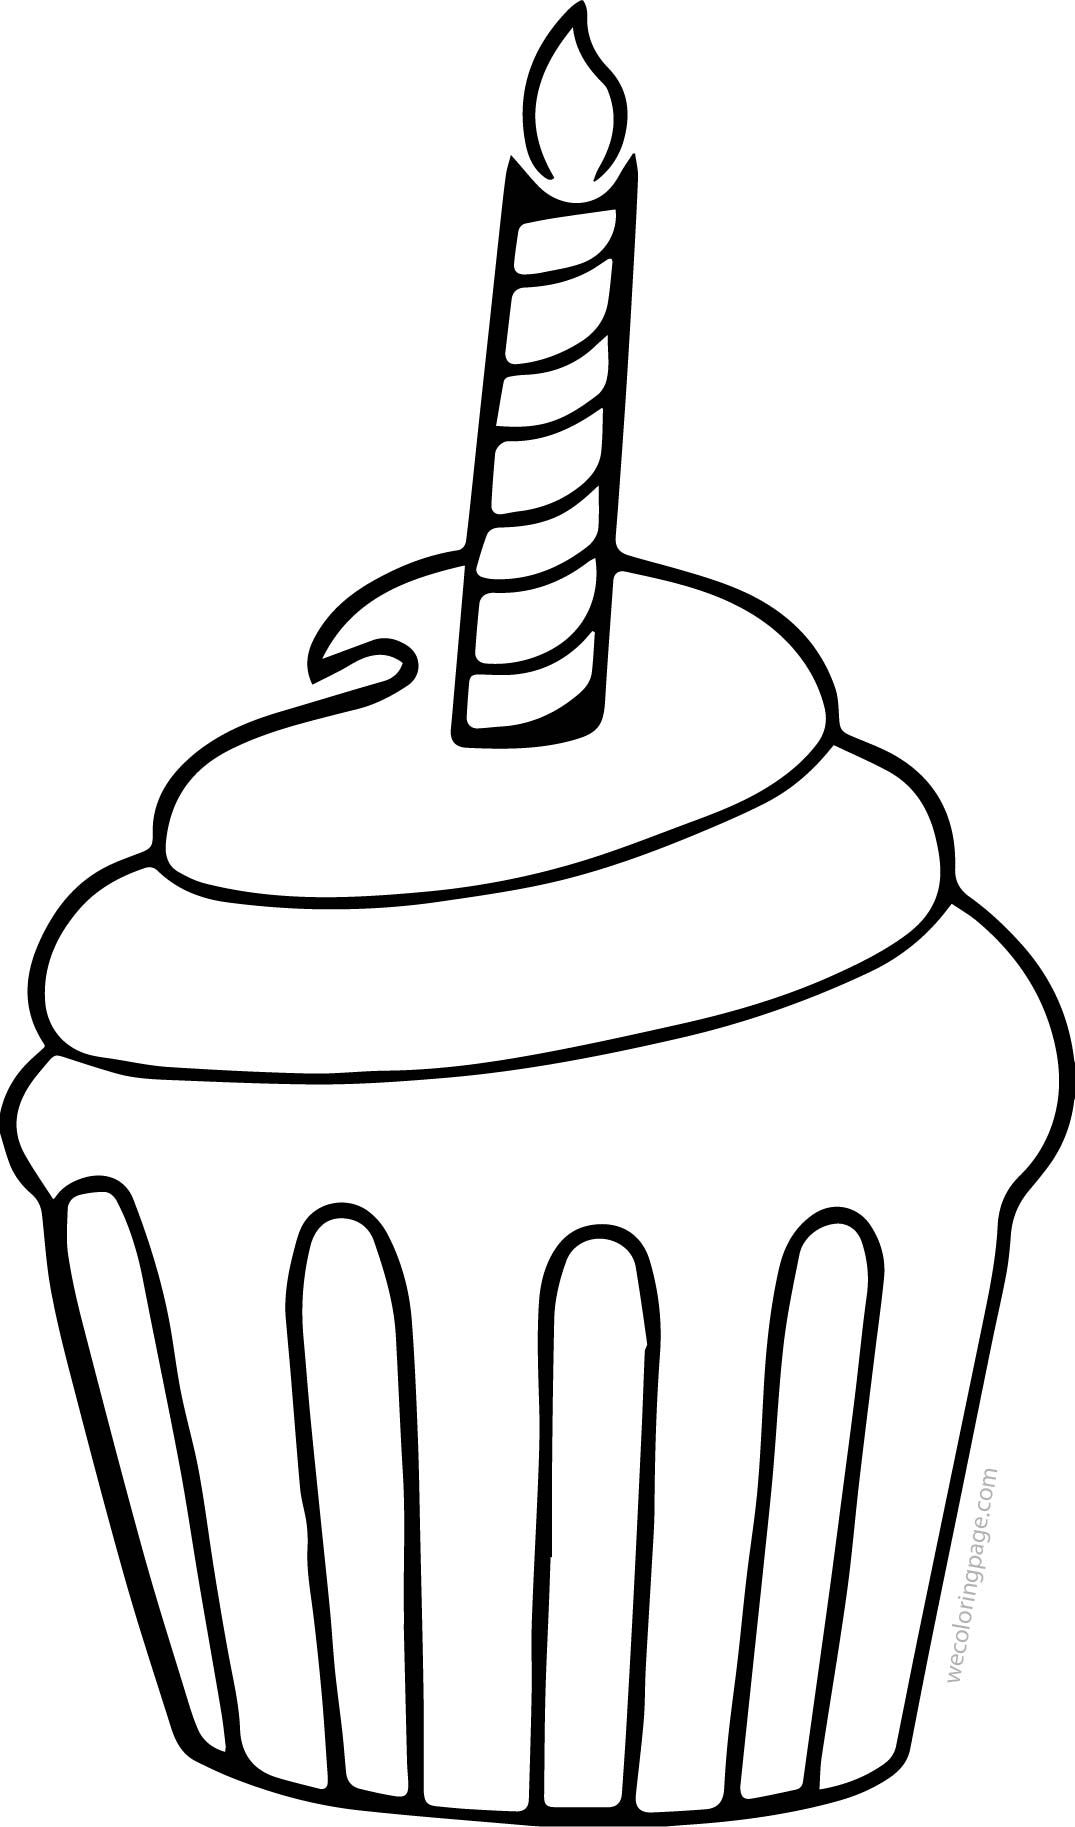 Awesome Cupcake Cup Cake Candle Coloring Page